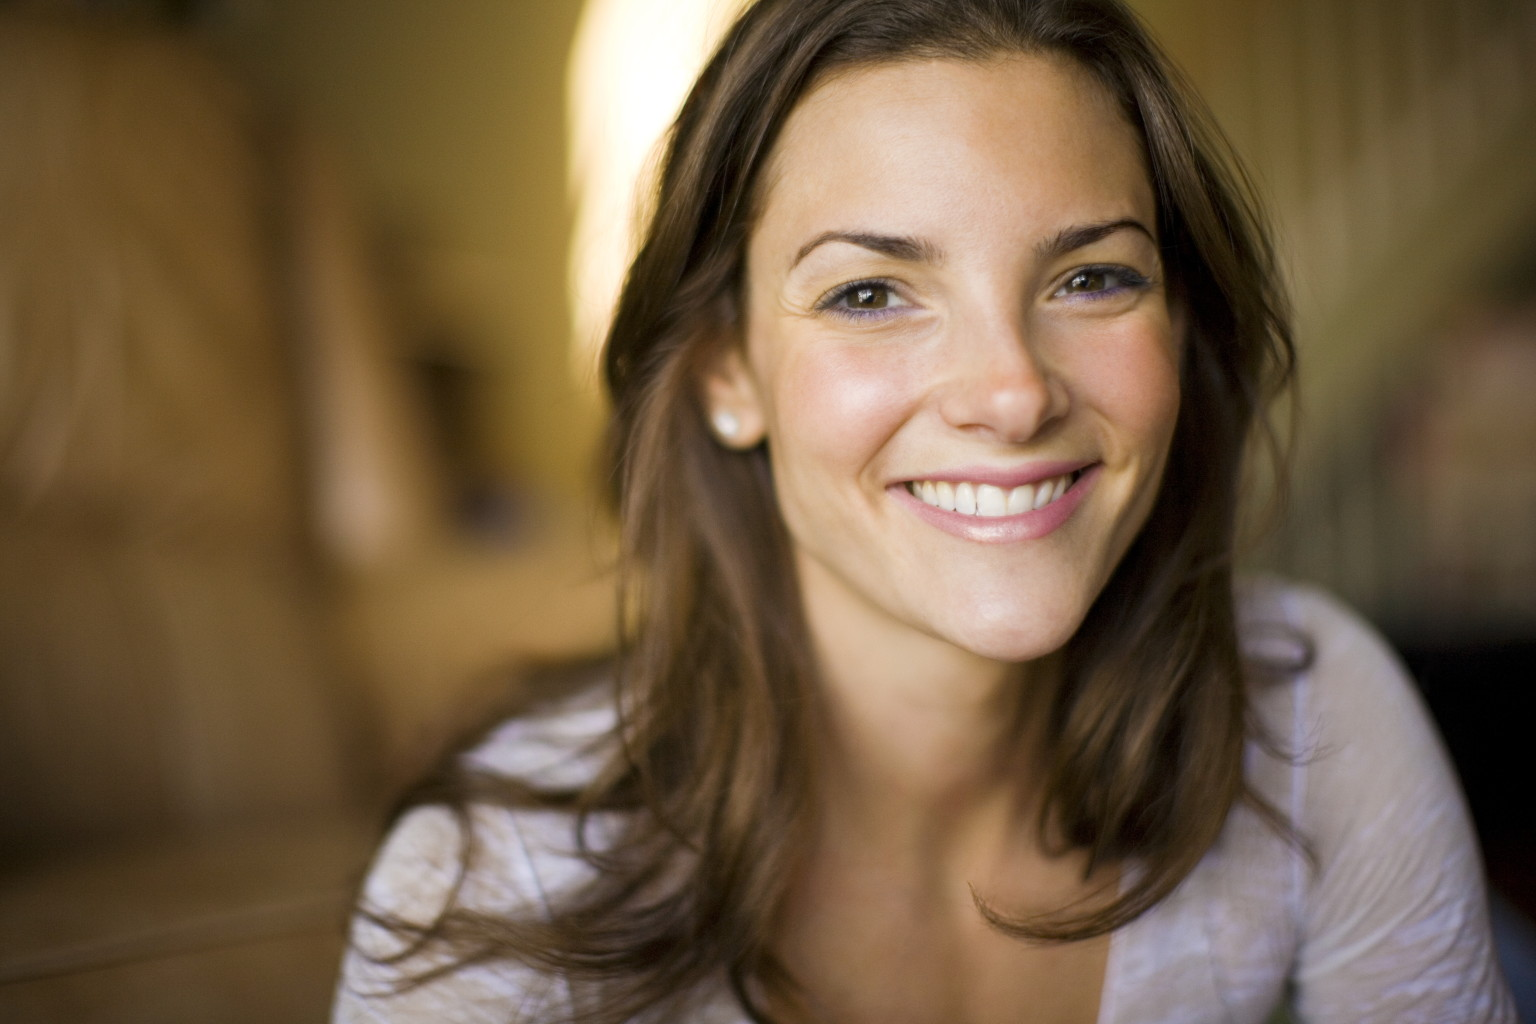 Portrait of woman smiling indoors